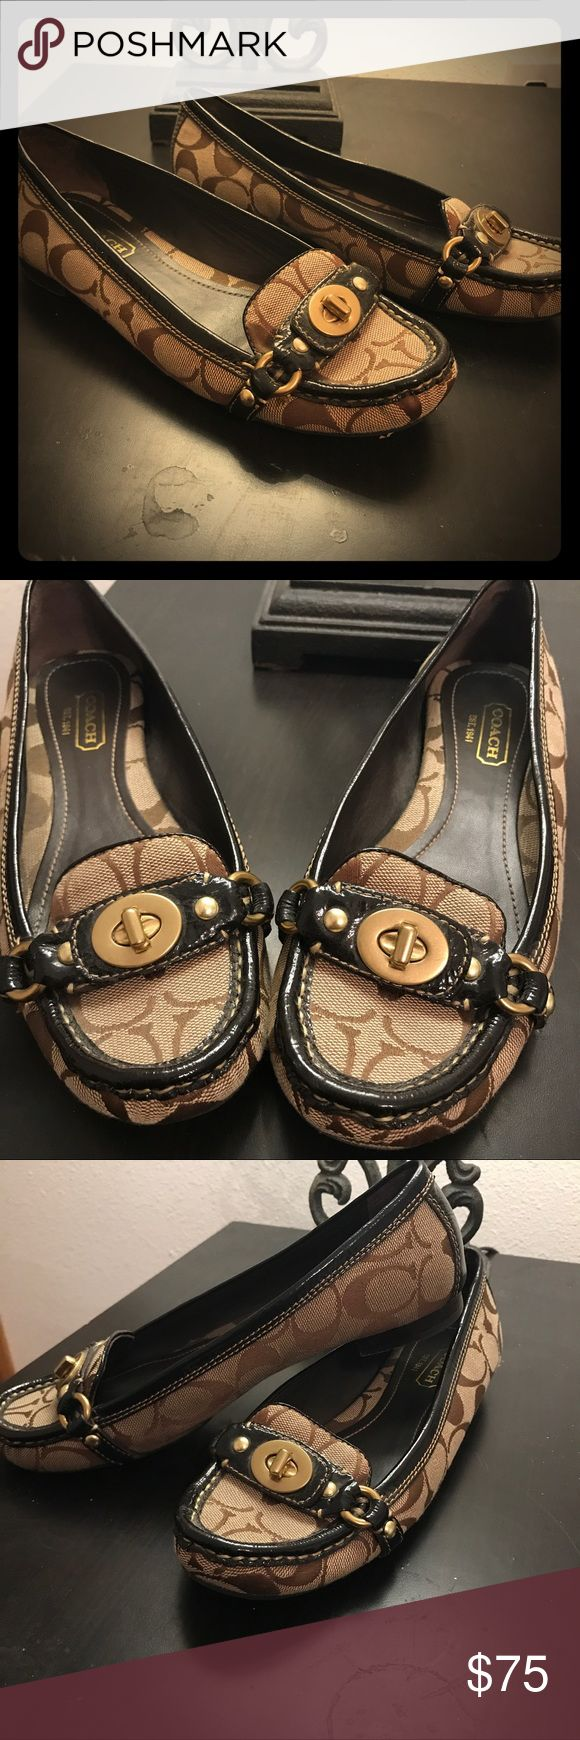 Coach Flats Classic coach flats, super cute and comfortable, great for work or everyday ! In great condition. Size 7 1/2. Has a scuff as show in photos. Coach Shoes Flats & Loafers